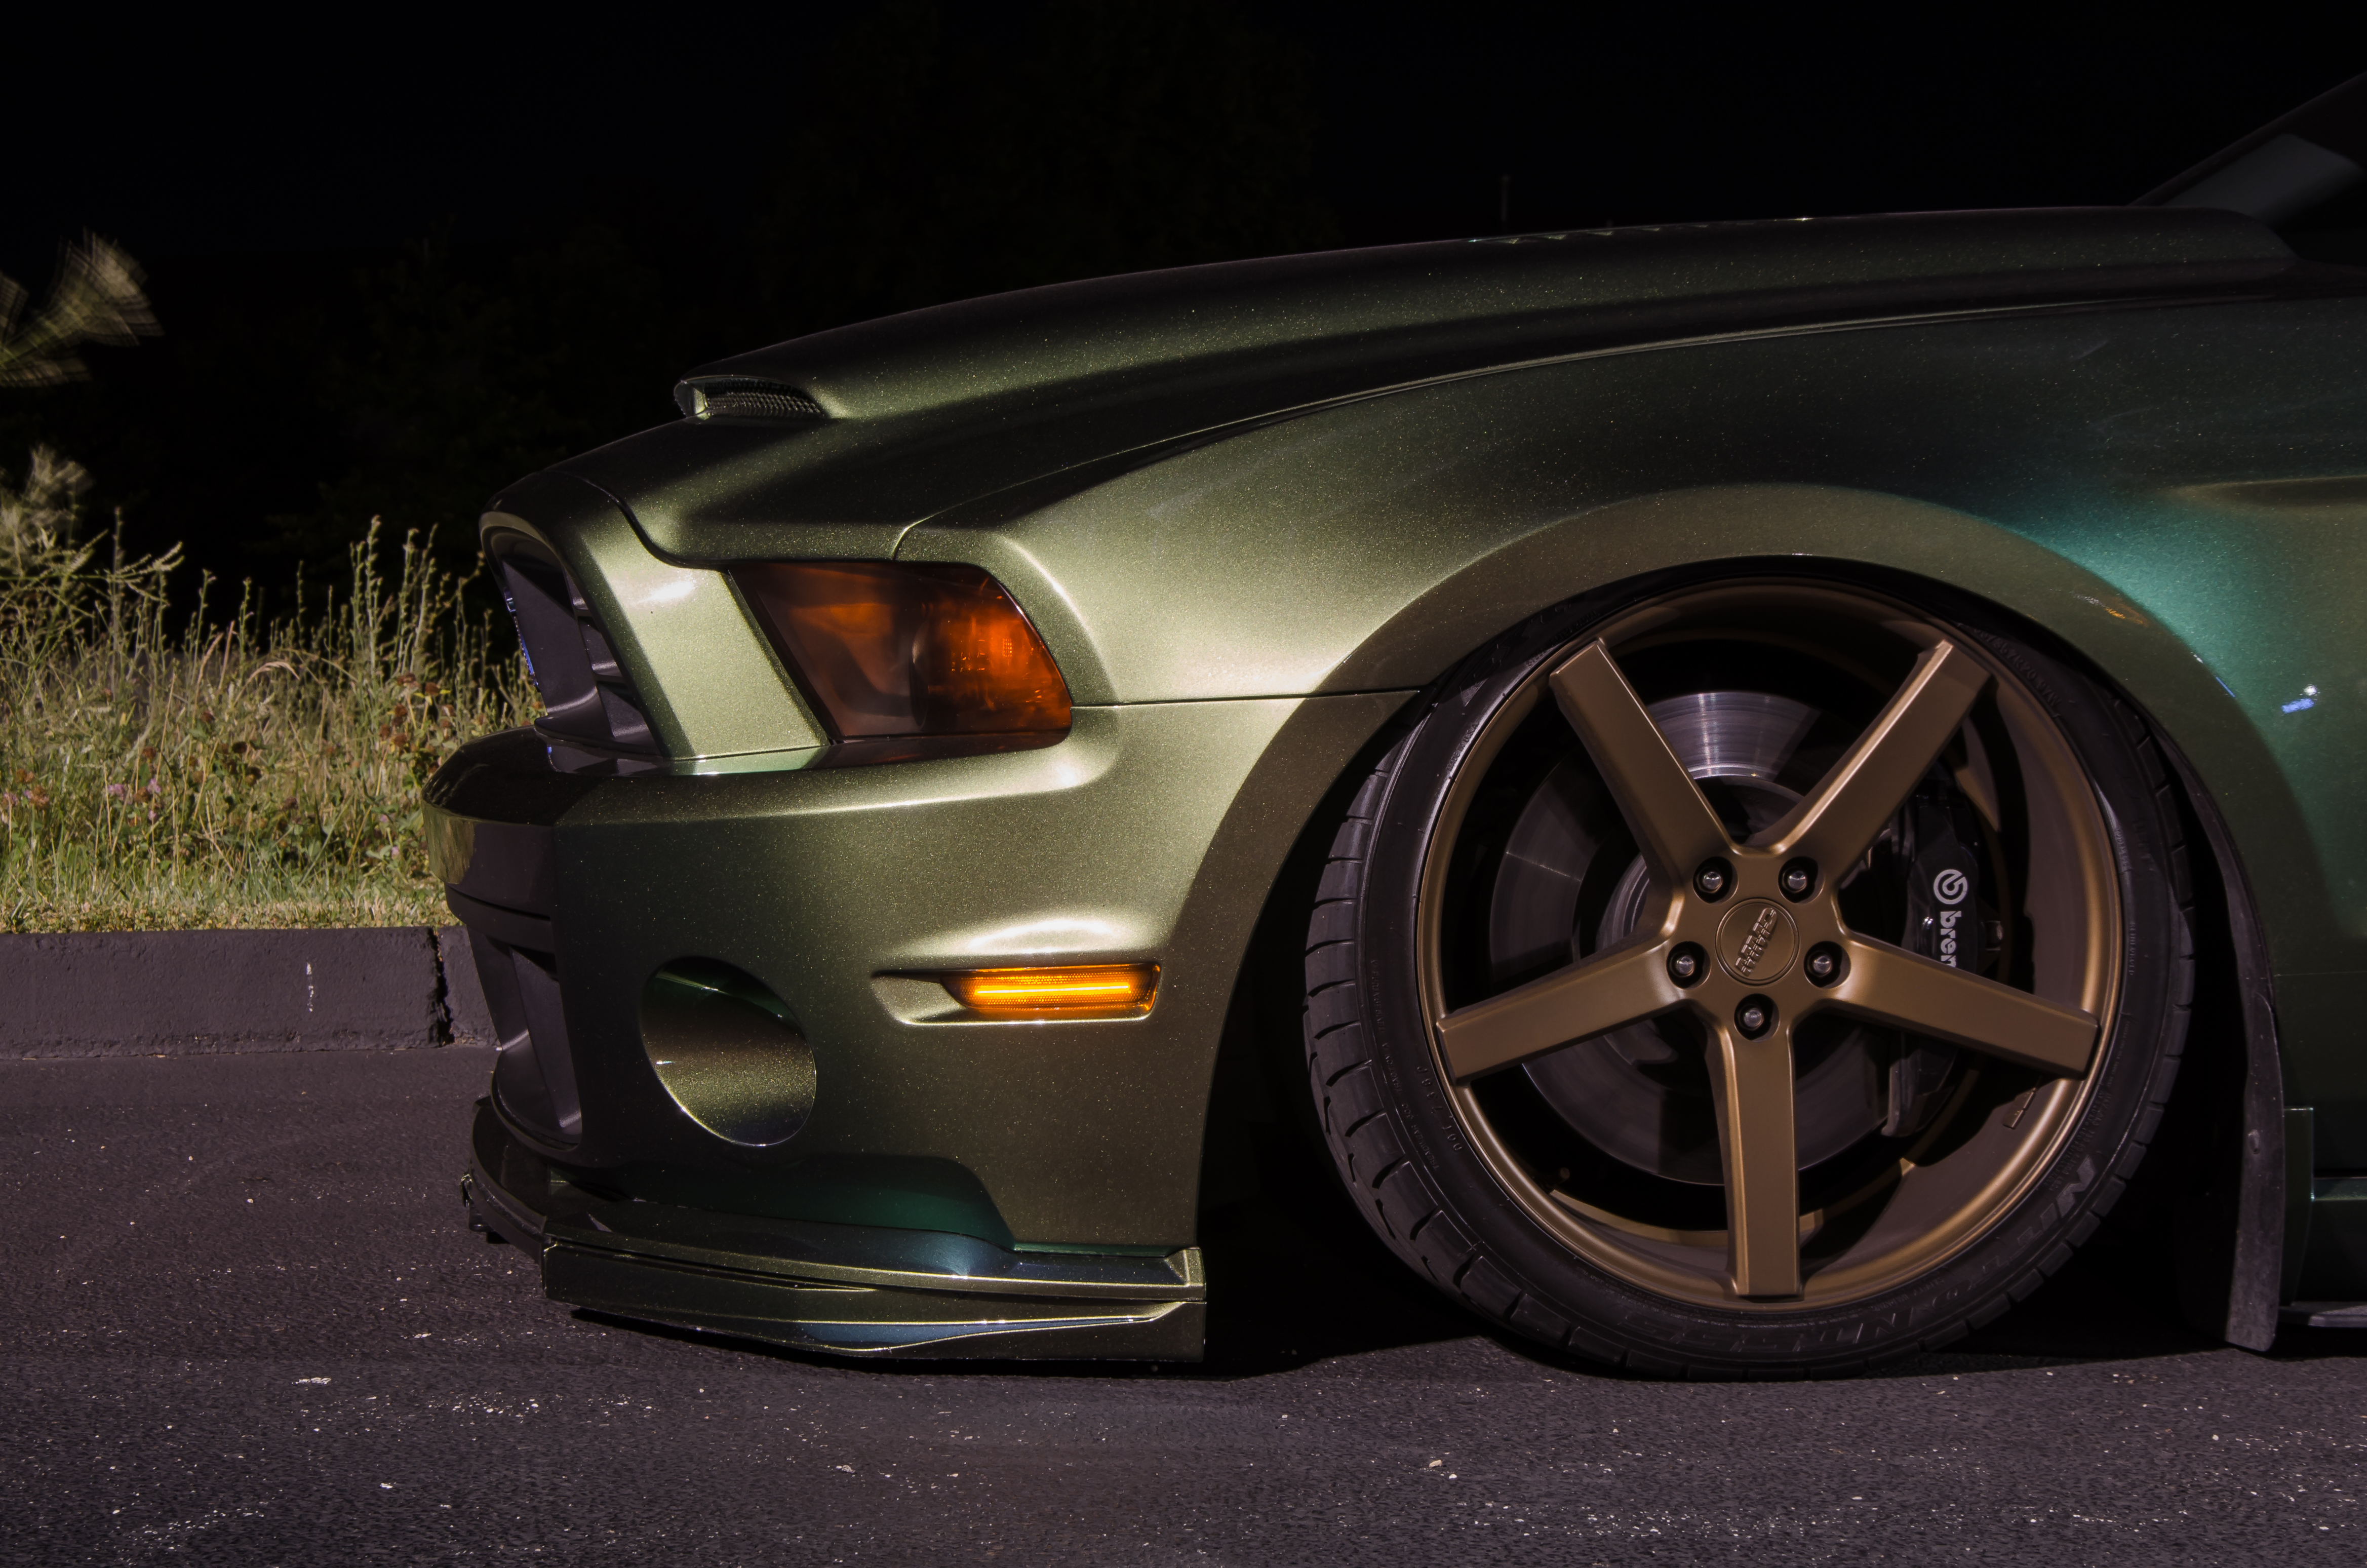 2010%20ford%20shelby%20mustang%20front%20sidemarkers%20smoked%20owner%20ig%20@85shelby2010%20(5).jpg